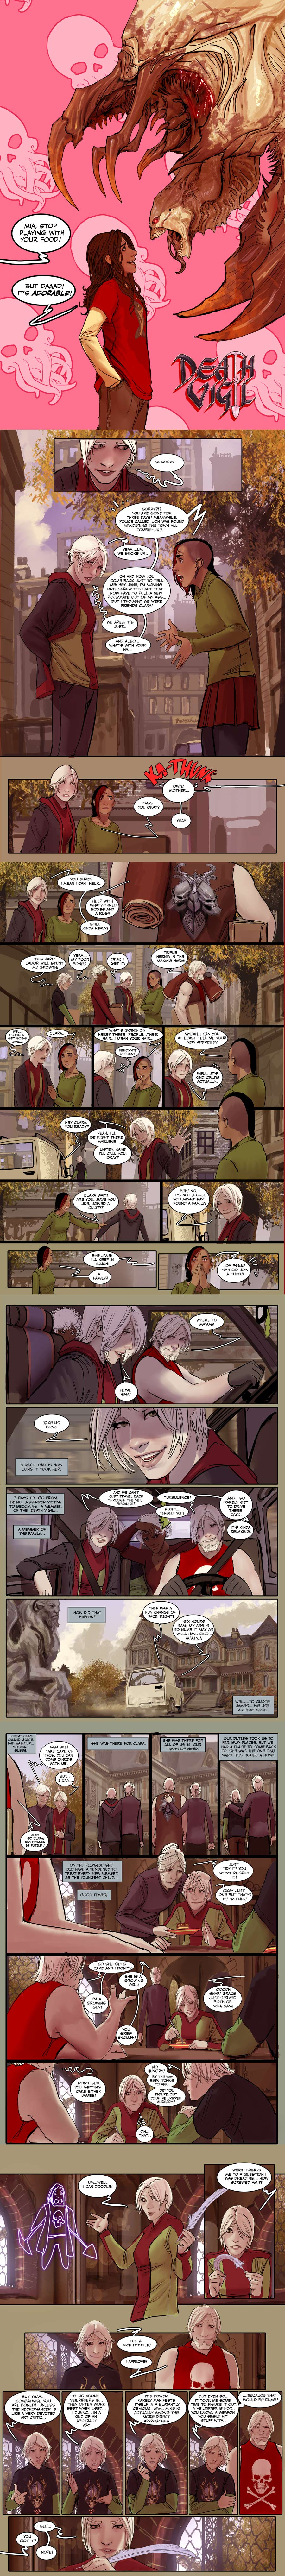 death vigil 3  preview by nebezial